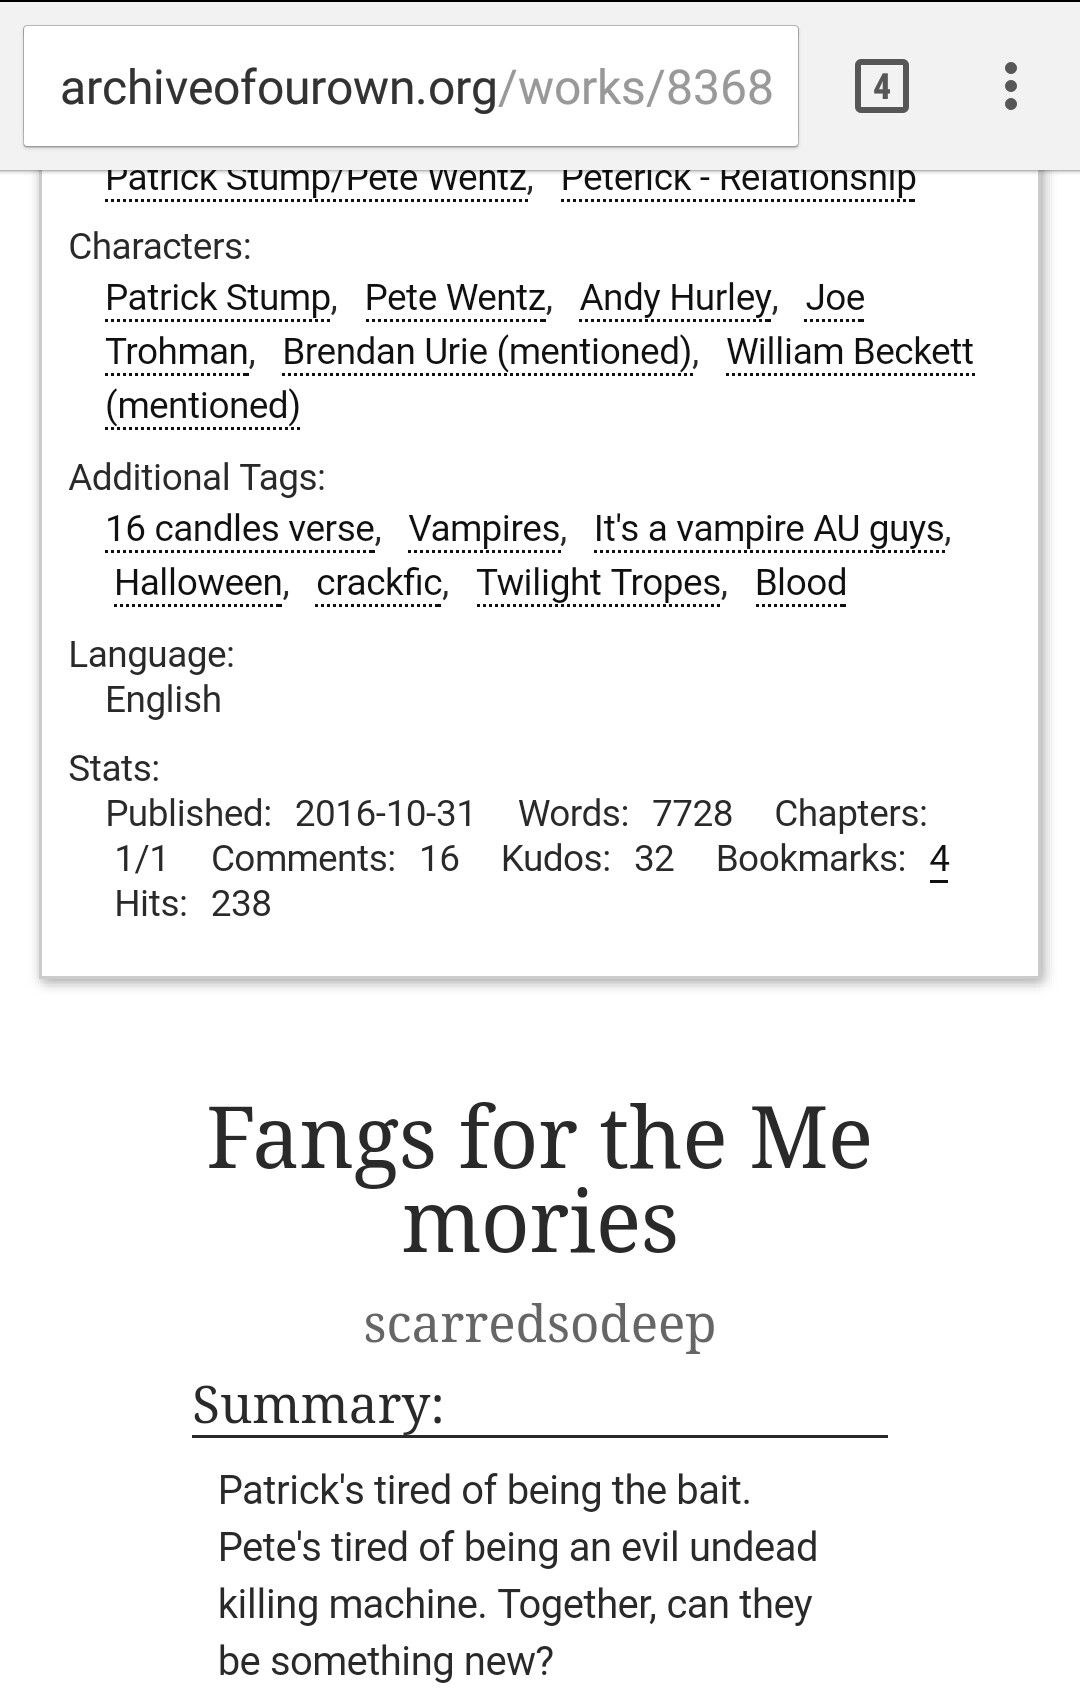 Vampire Fic Patrick Joe And Andy Are Vampire Killers Who Get Saved And Joined By Vampire Pete Who Feeds On Patrick Http Archiv Andy Hurley Joe Trohman Words